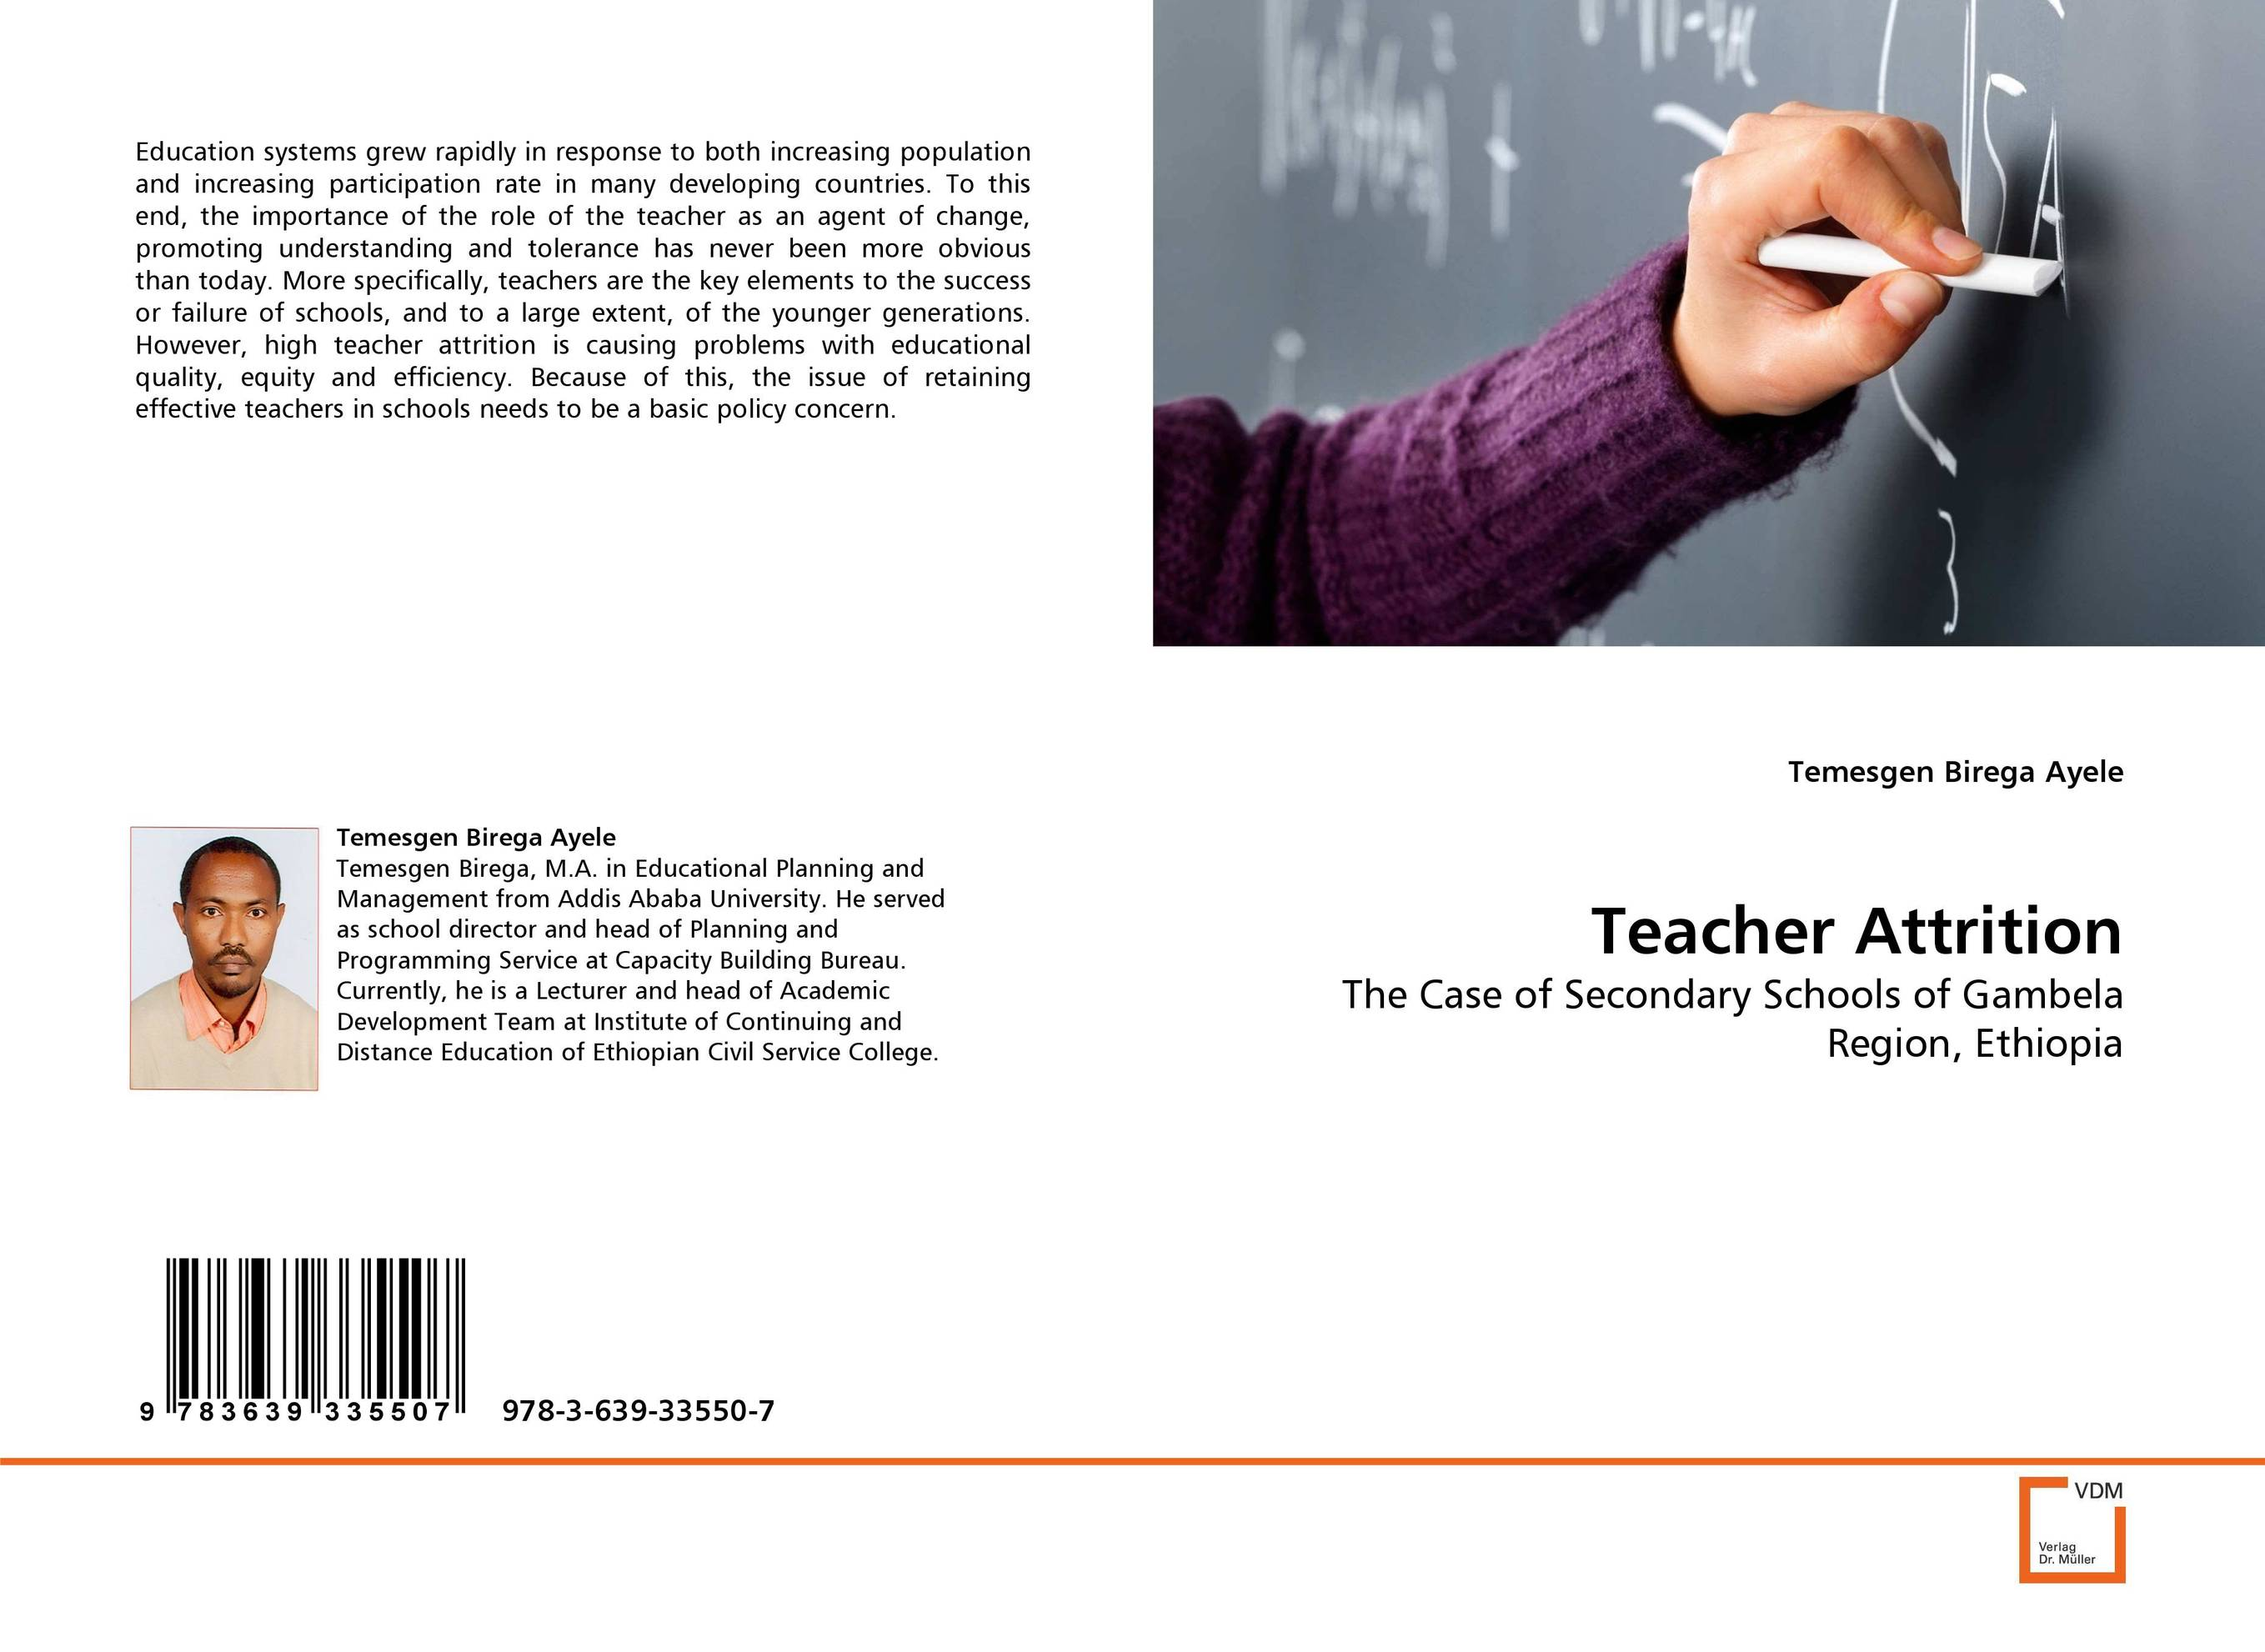 Teacher Attrition understanding the role of educational resources in inclusive schools